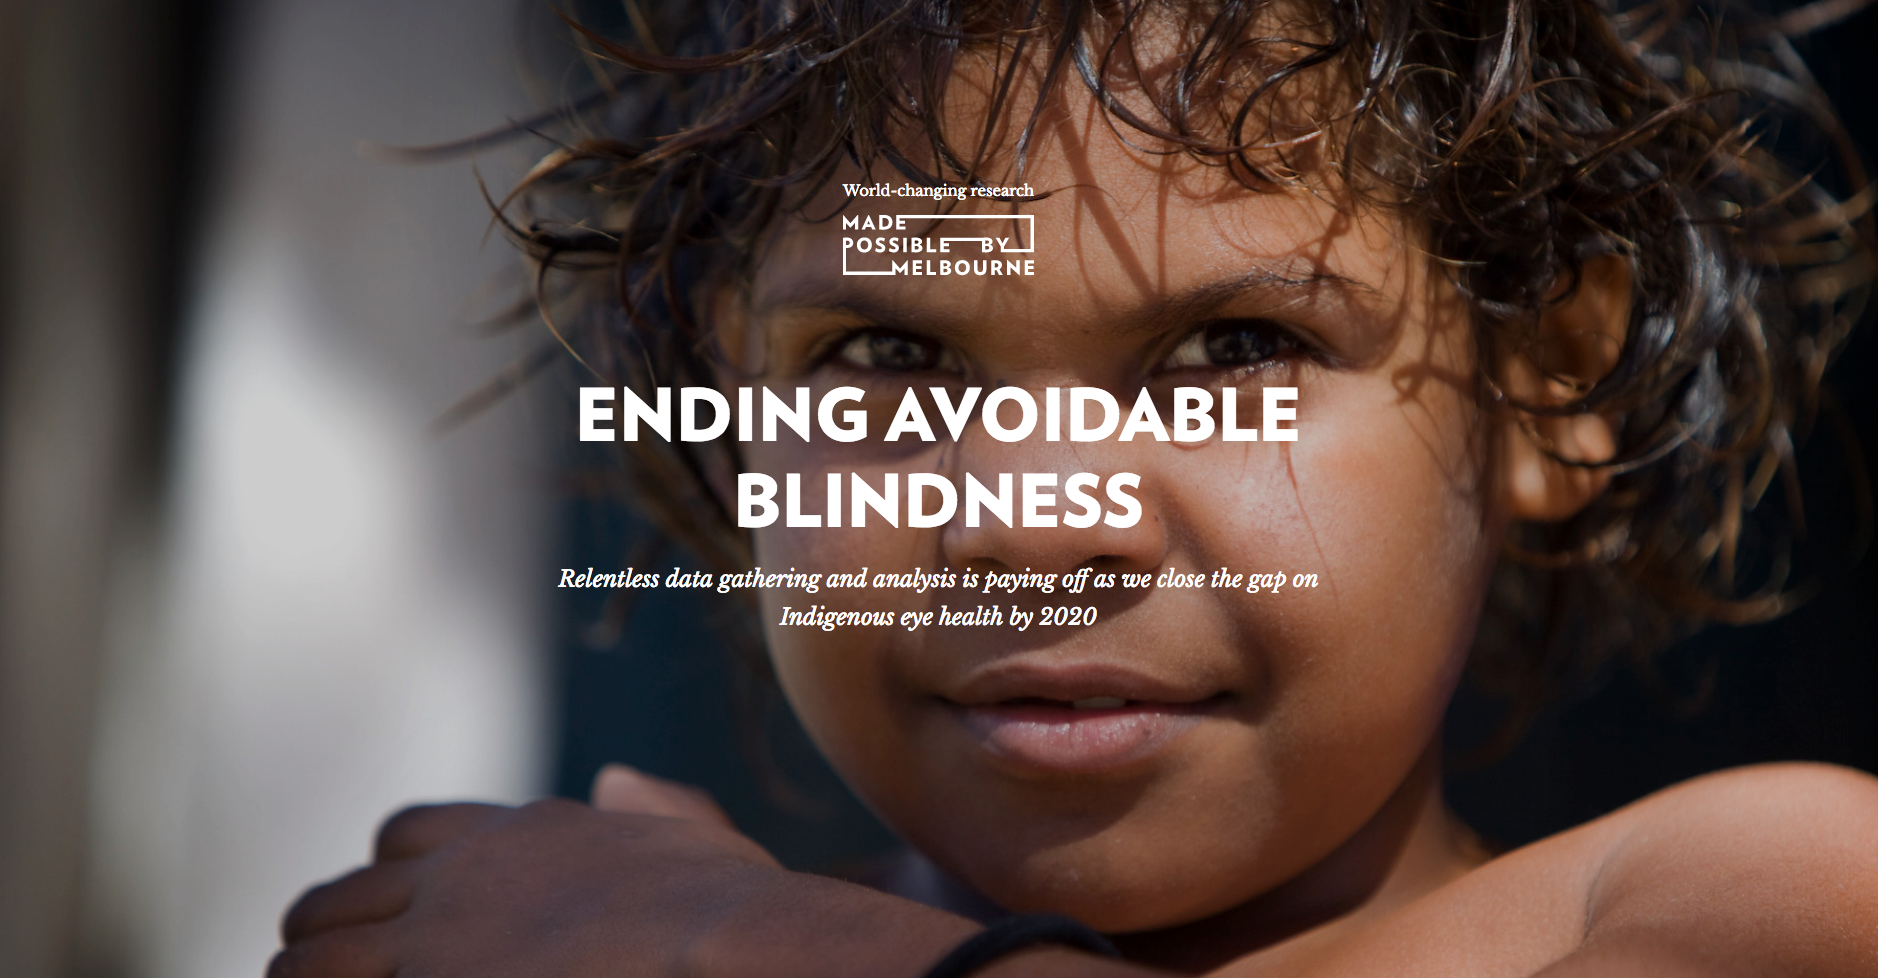 ending avoidable blindness image